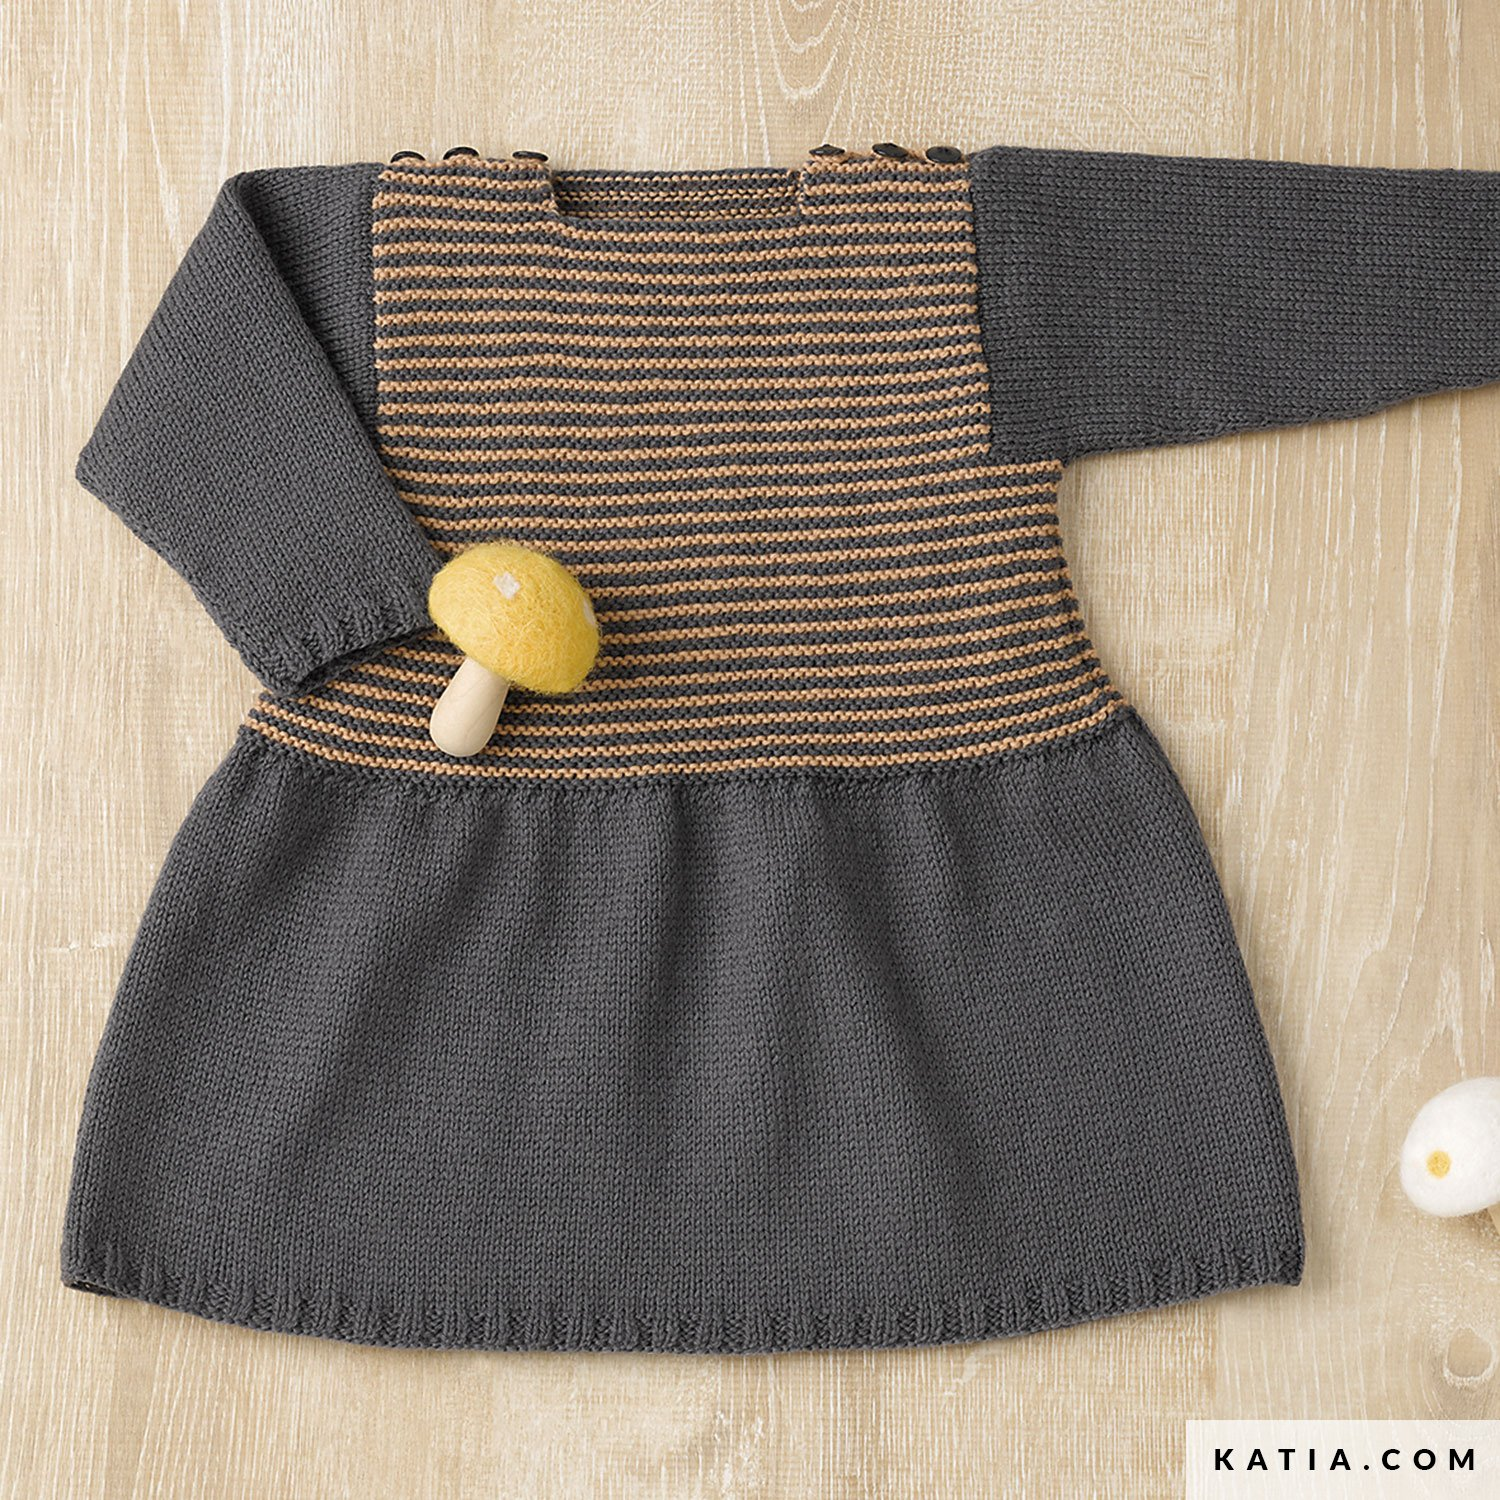 How to Knit a Baby Crochet Dress